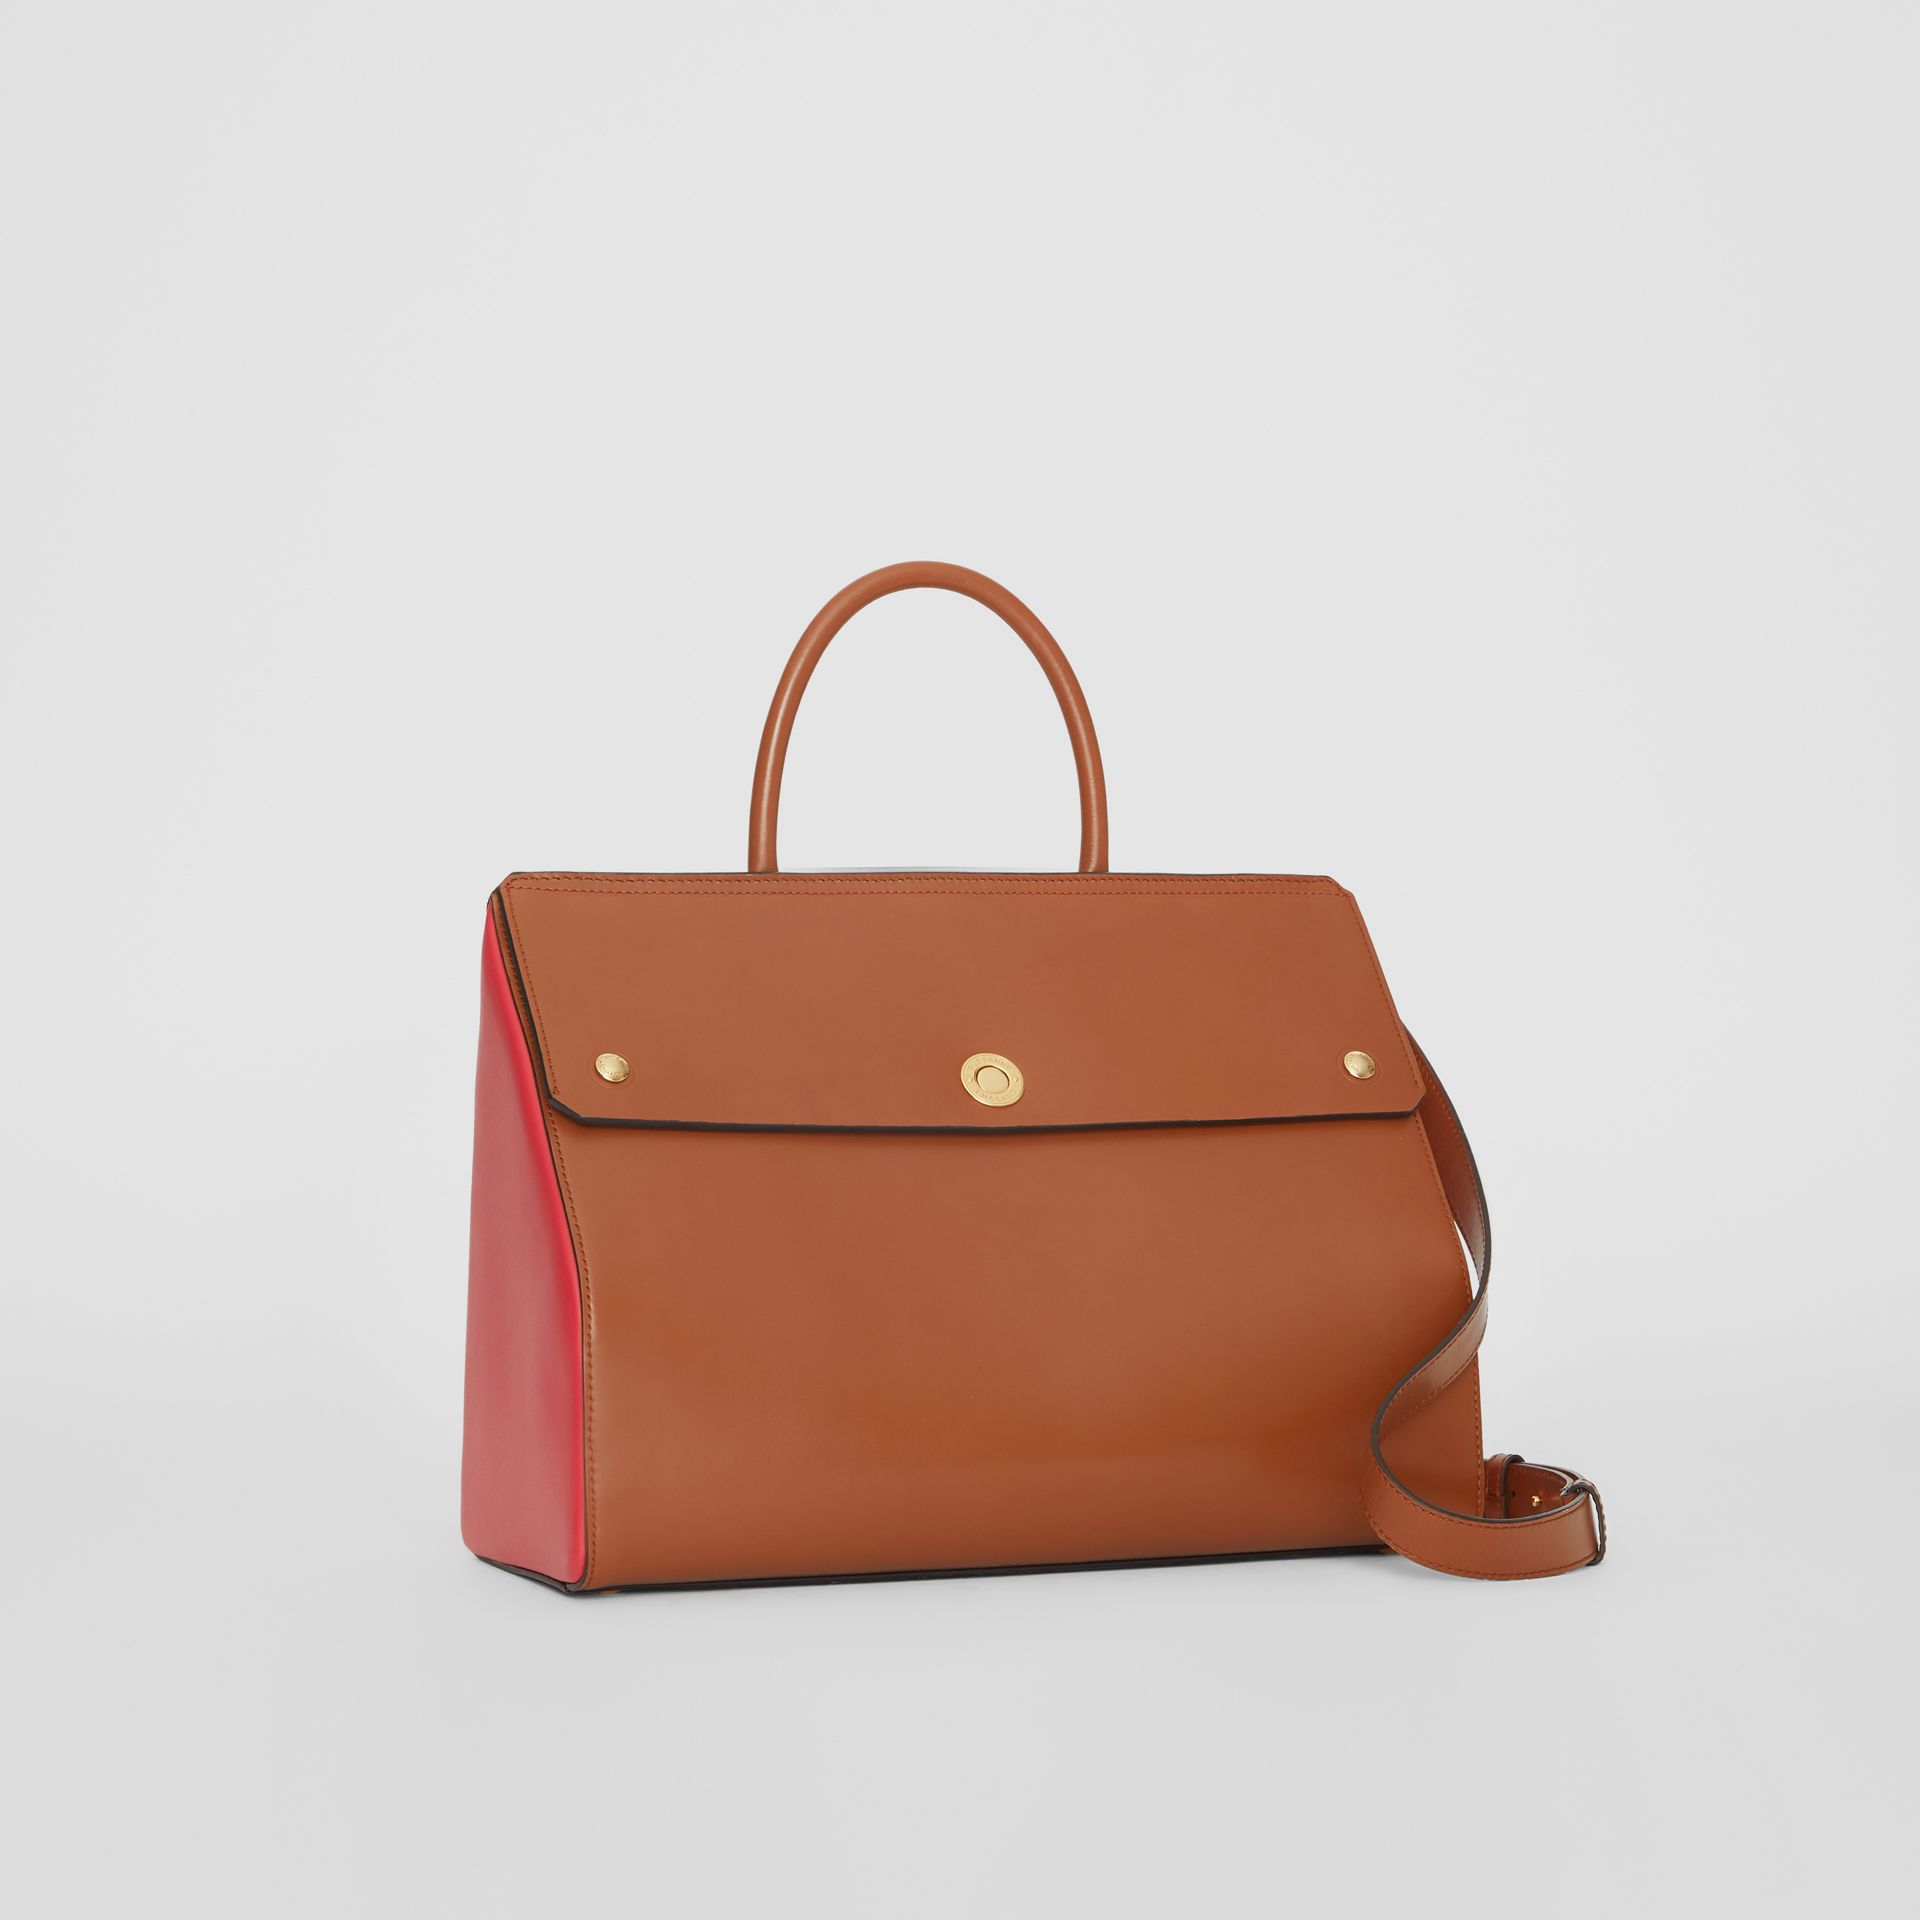 Medium Leather Elizabeth Bag in Malt Brown - Women | Burberry Australia - gallery image 5